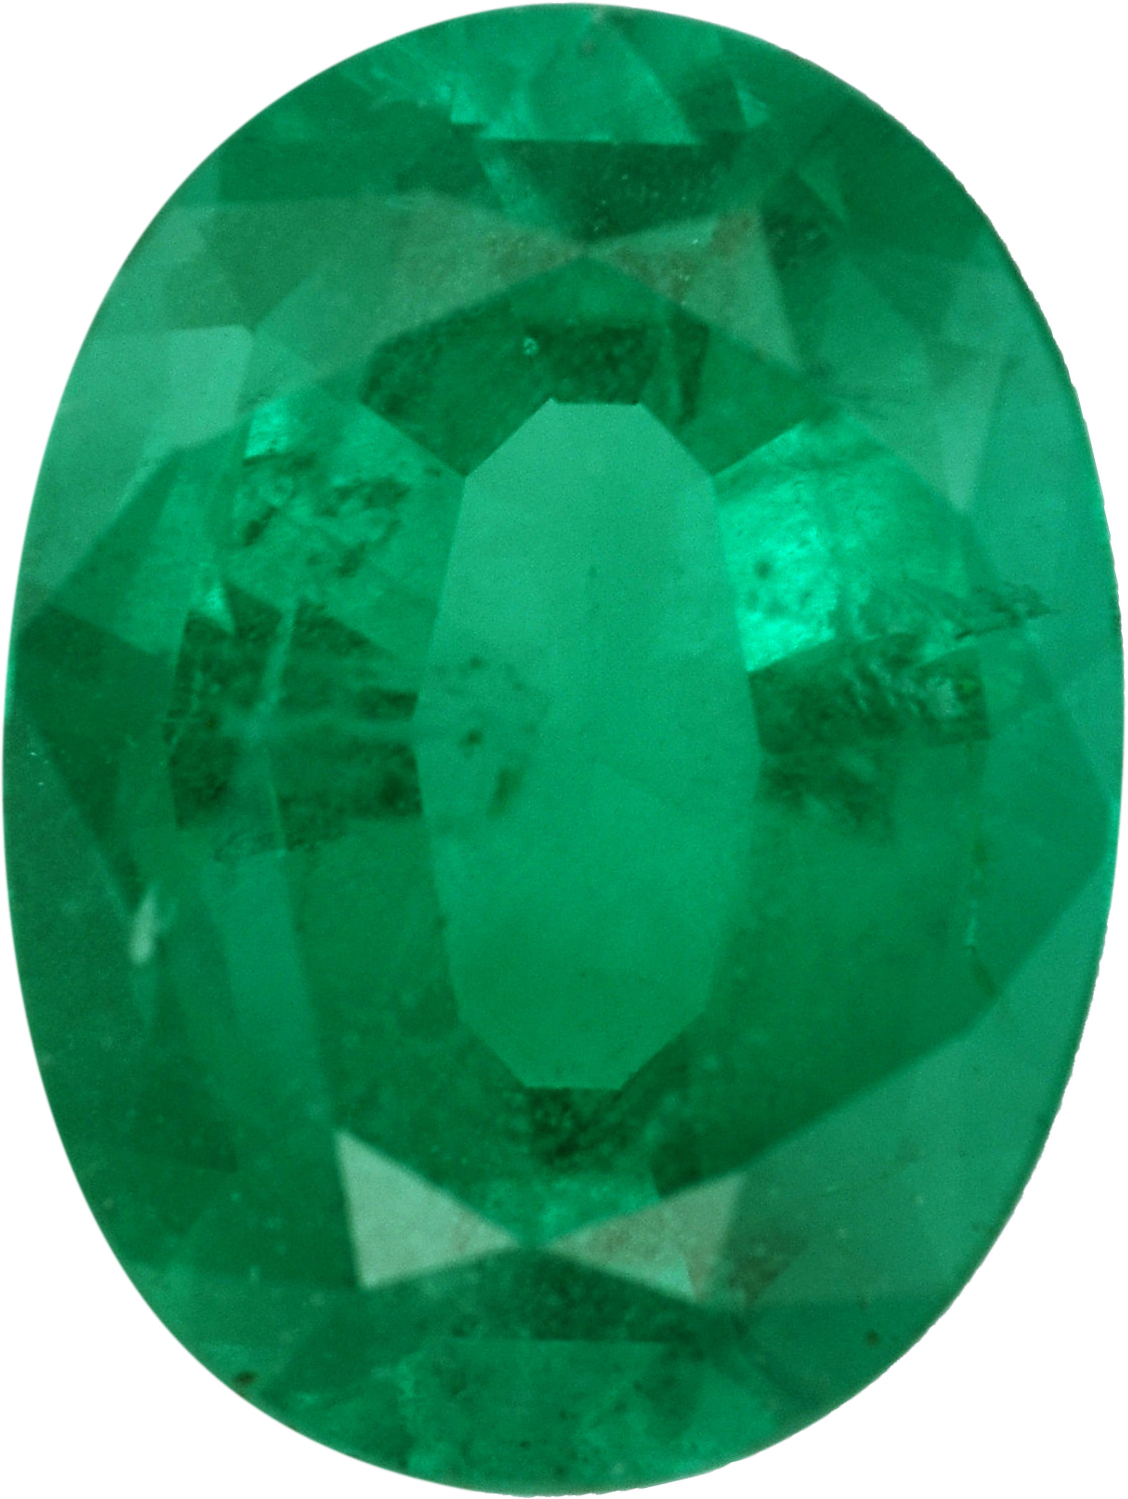 Fabulous Emerald Loose Gem in Oval Cut, Vibrant Blue Green, 8.09 x 6.12  mm, 1.14 Carats